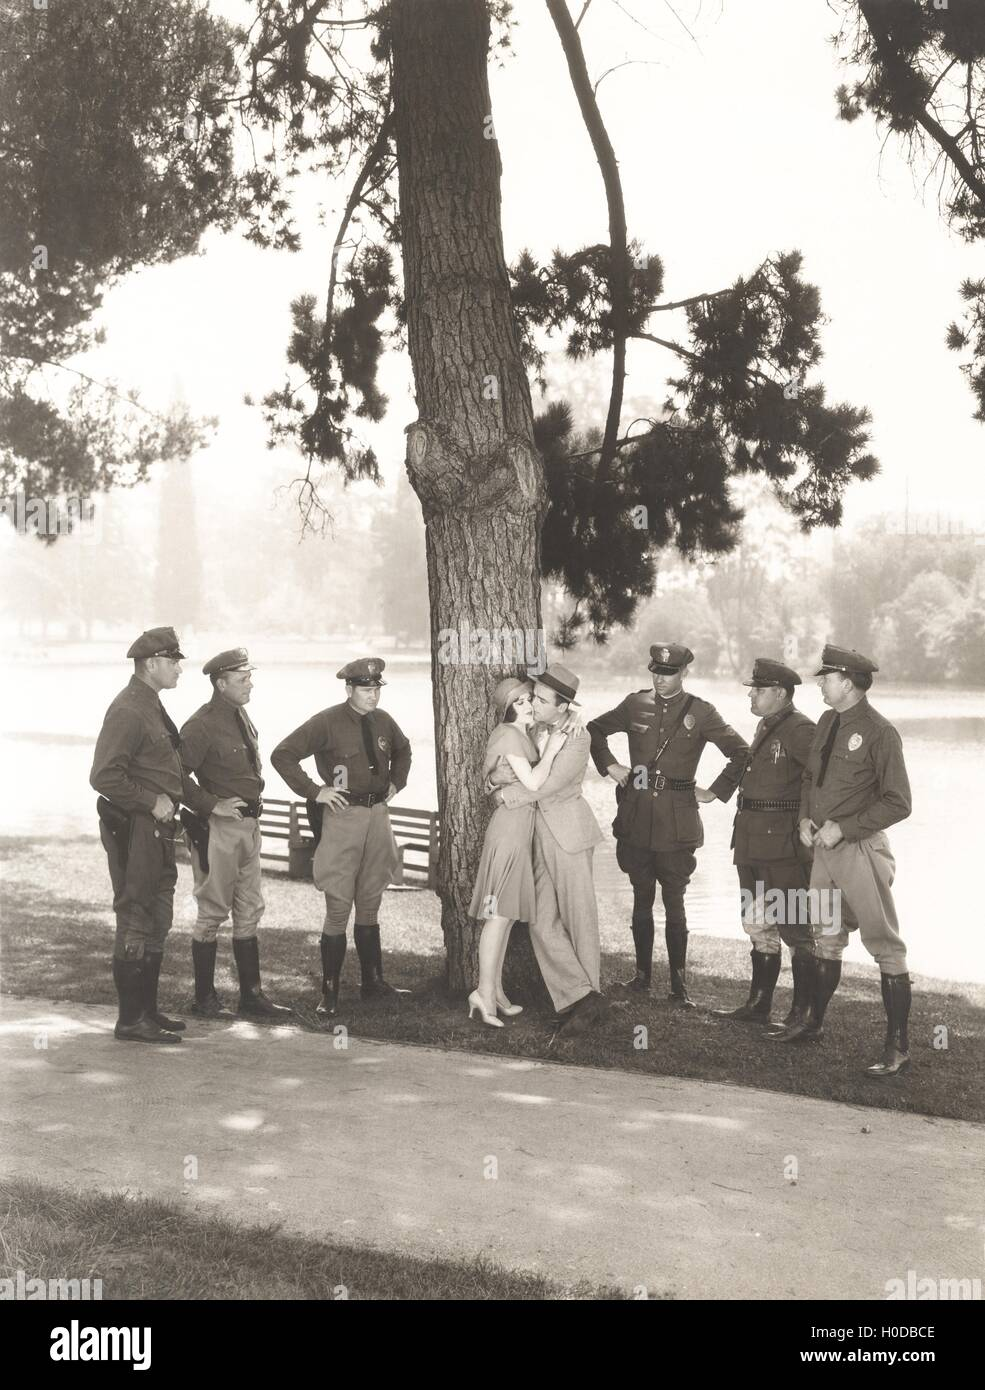 Police officers surrounding romantic couple in park - Stock Image